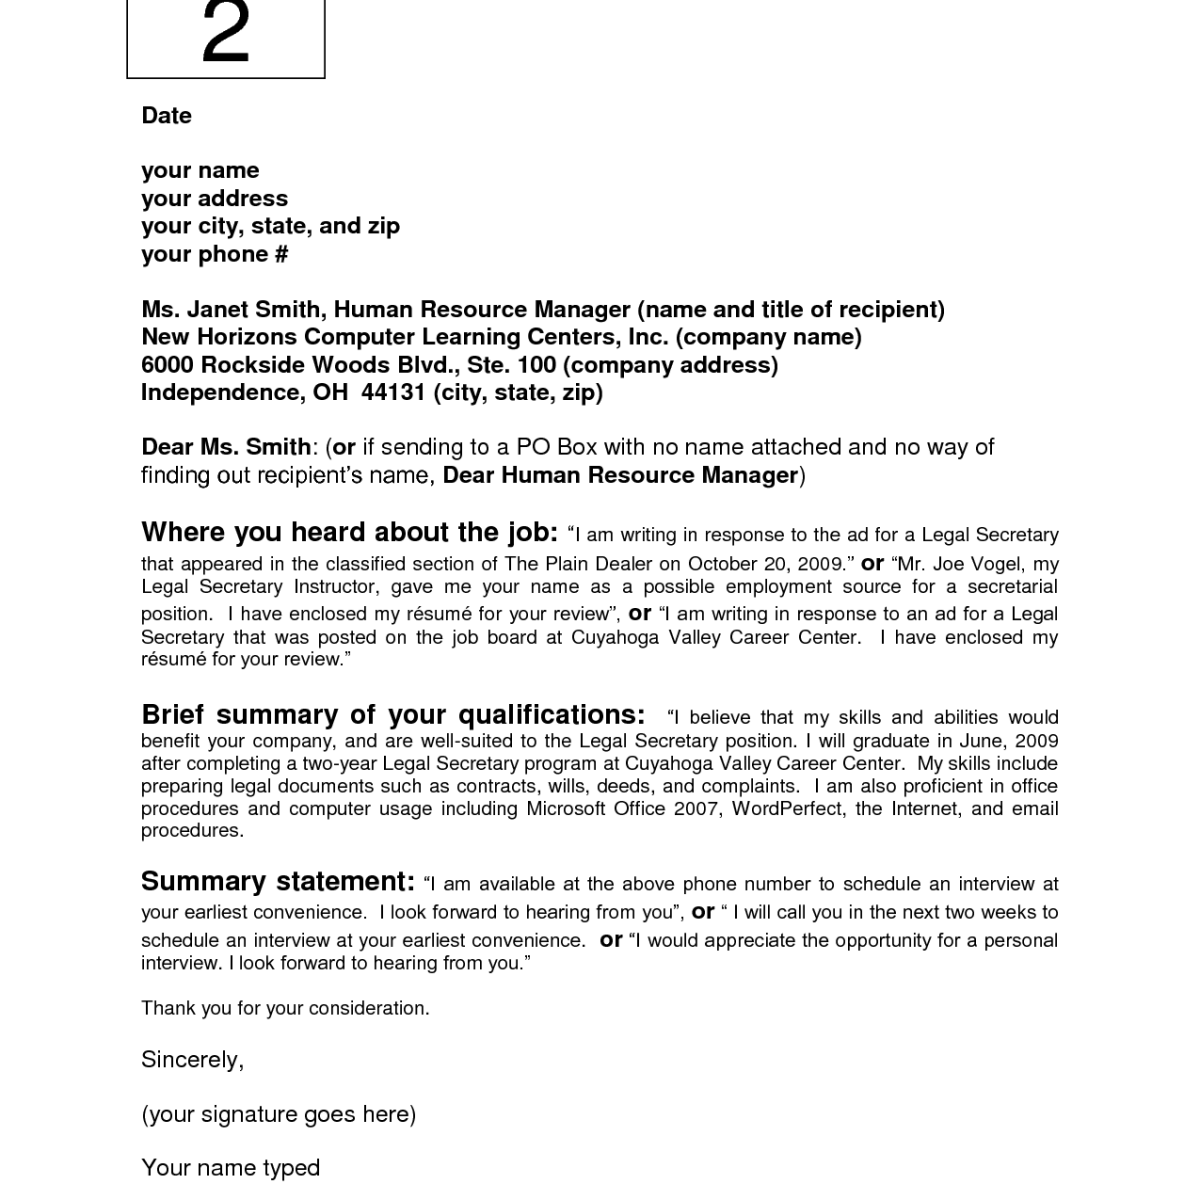 cover letter sample no name